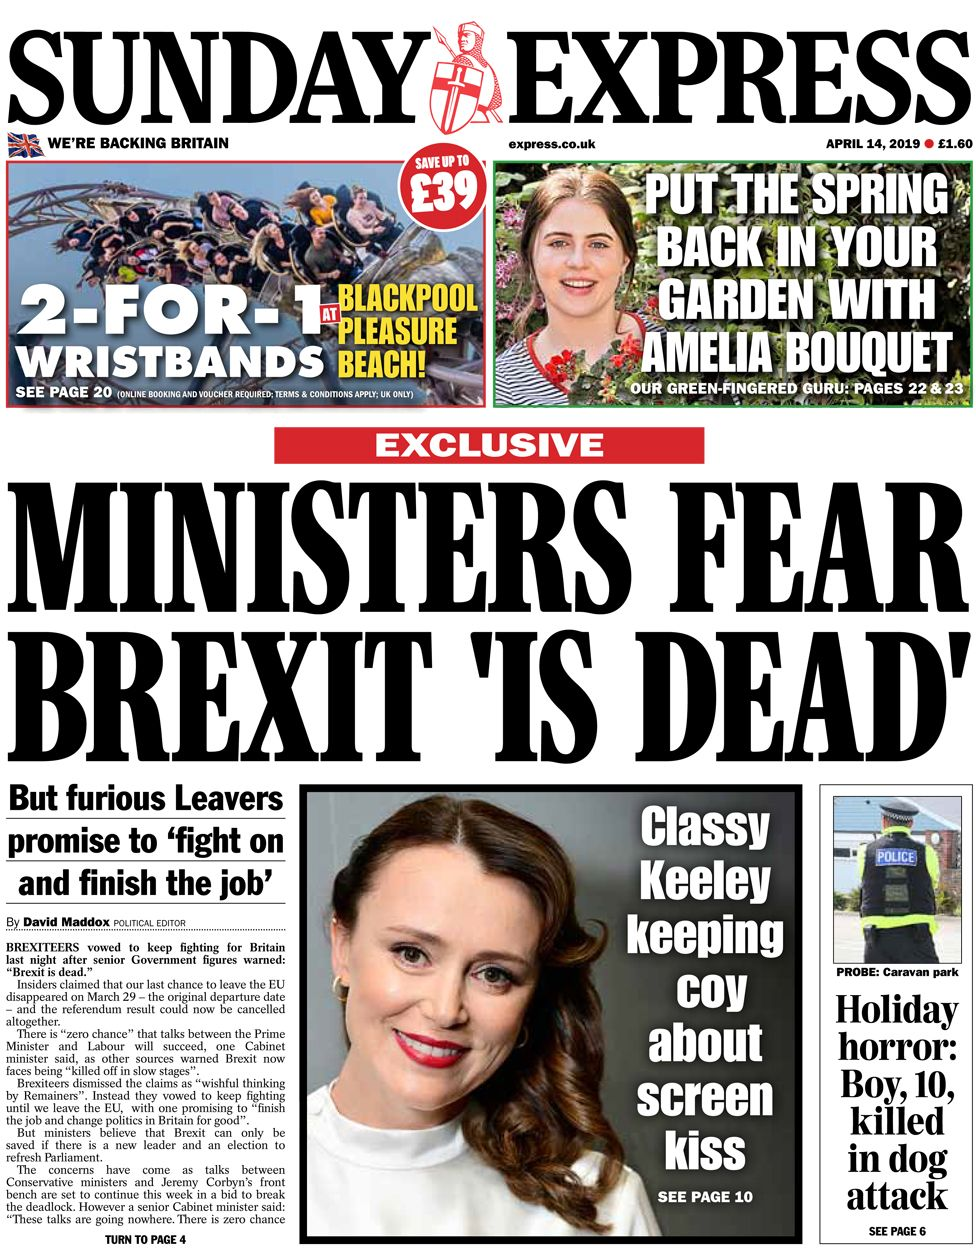 Sunday Express front page, 14/4/19